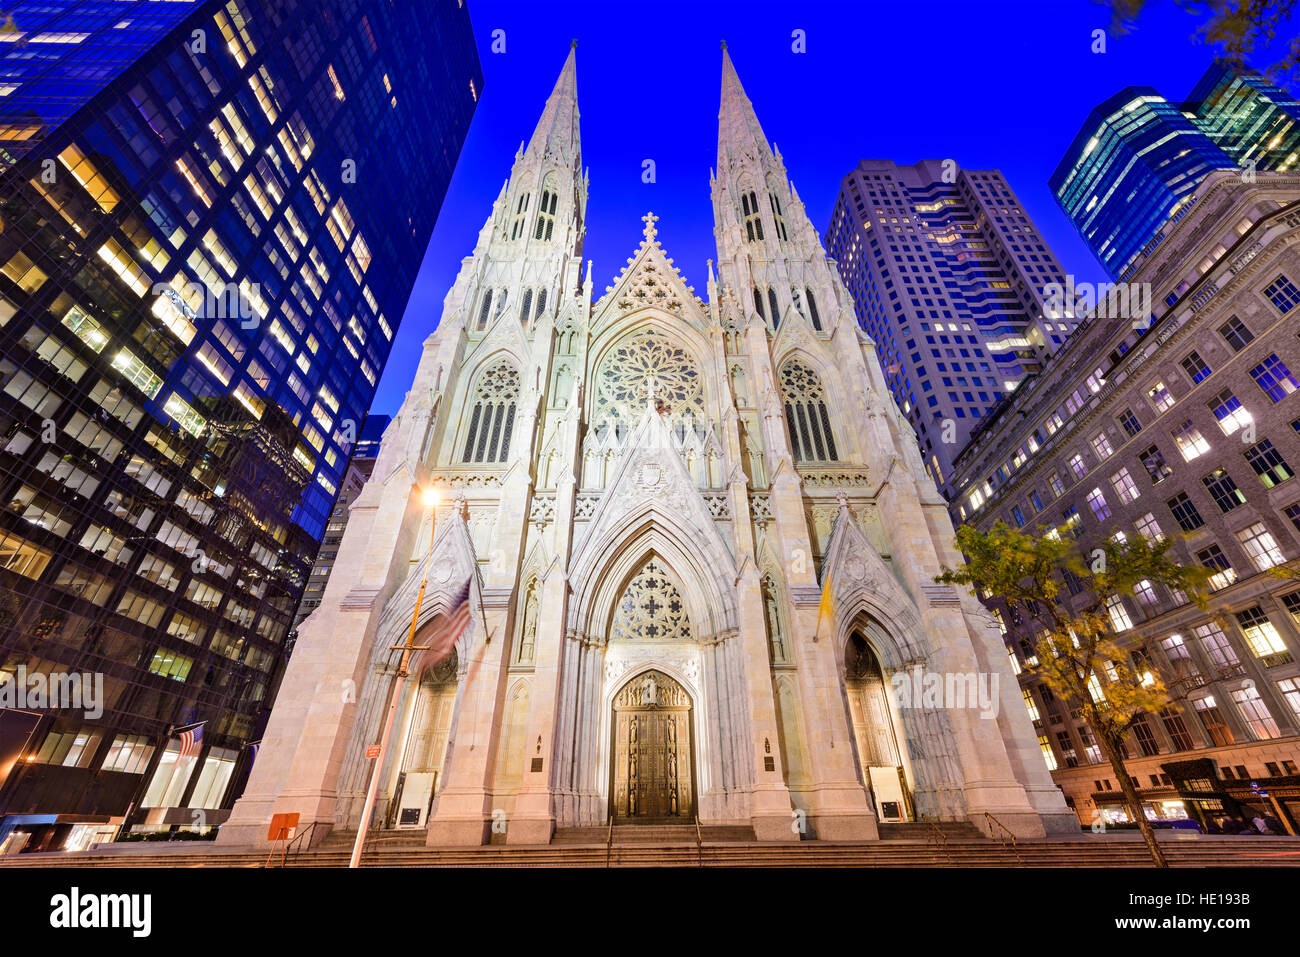 St. Patrick's Cathedral in New York City. - Stock Image